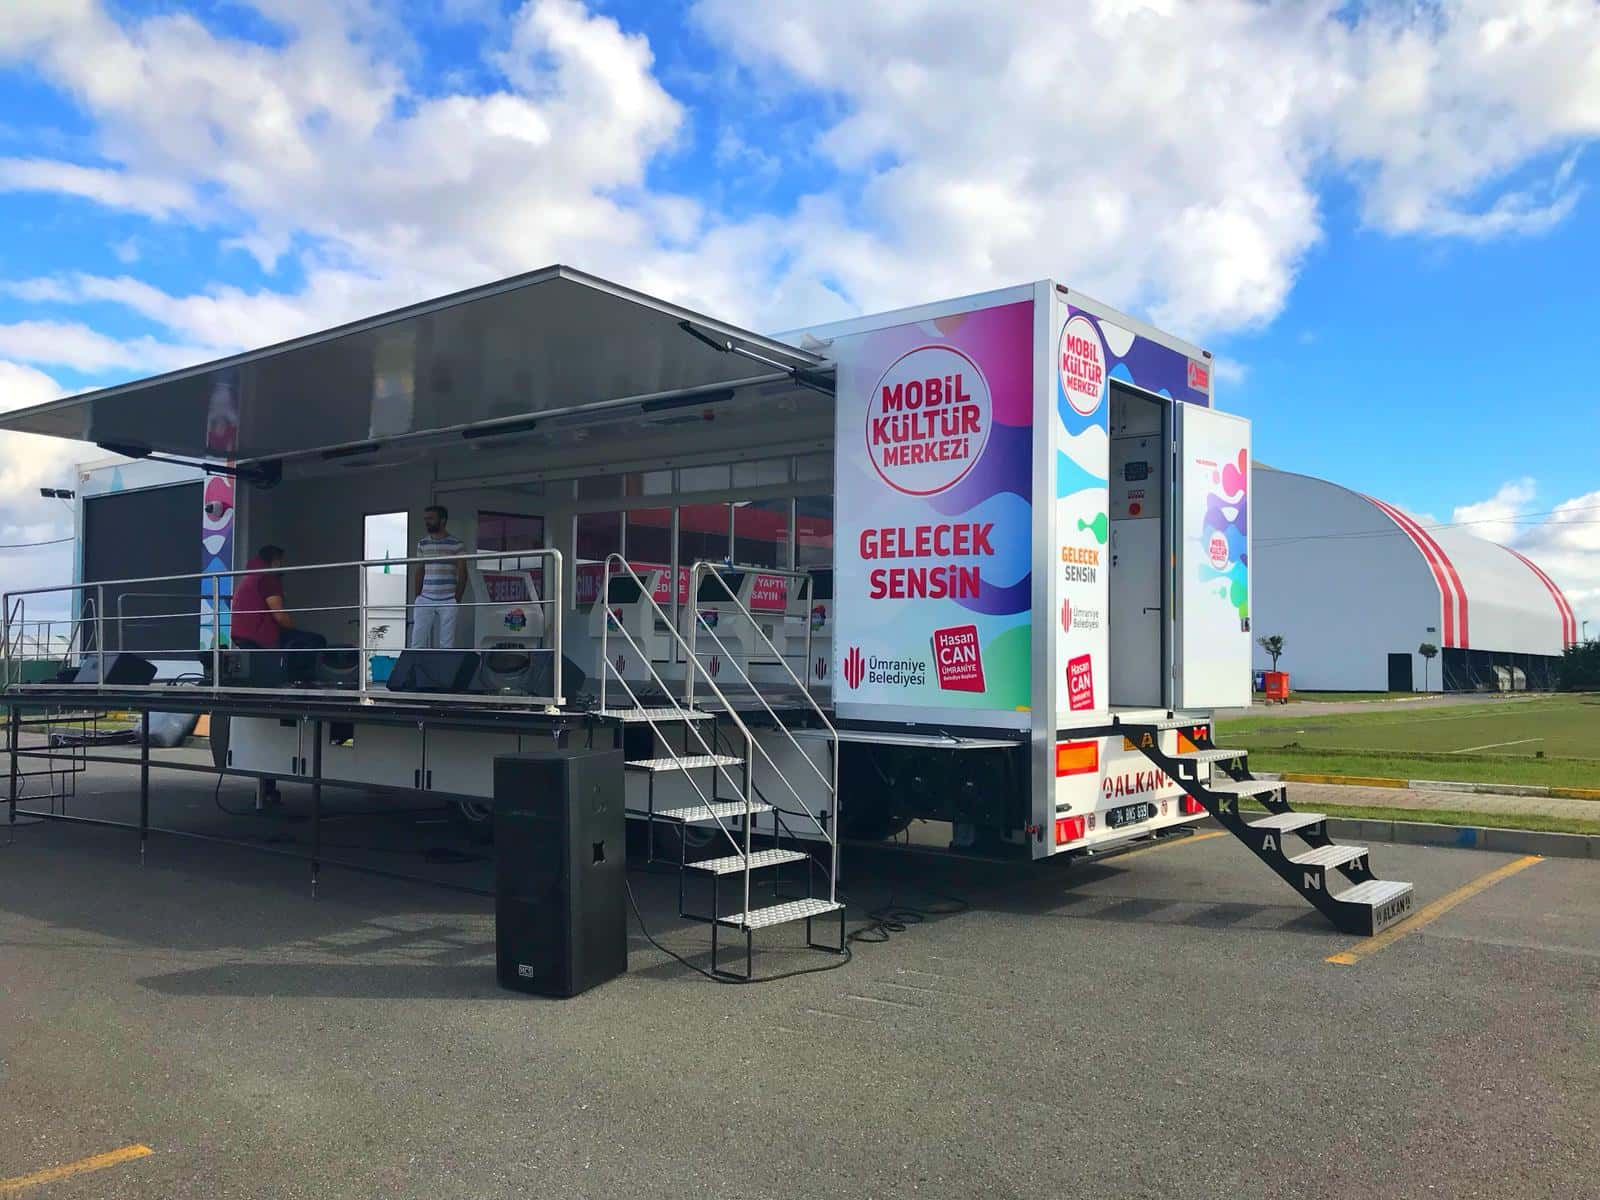 Turkey's First Mobile Culture and Education Vehicle Trailer Launches